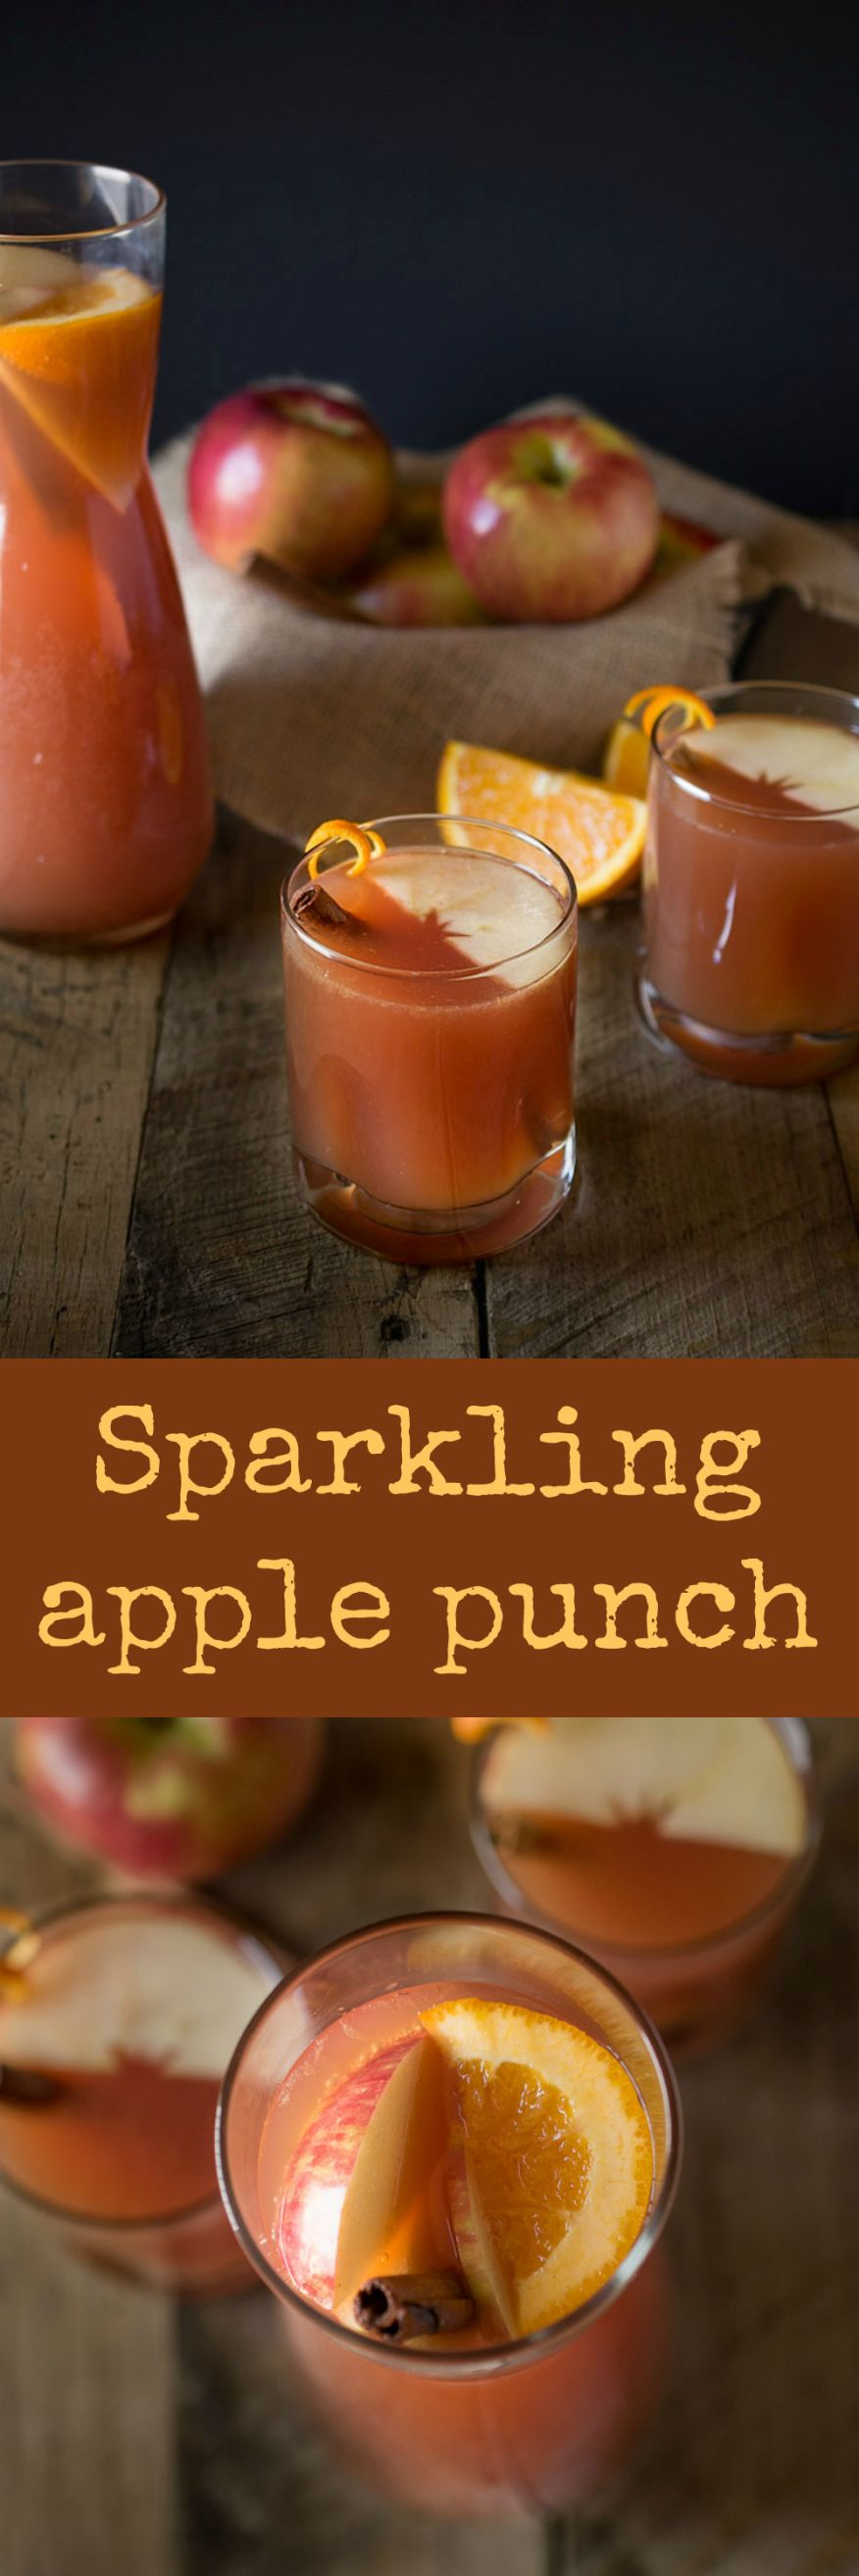 Sparkling apple punch #lemonadepunch